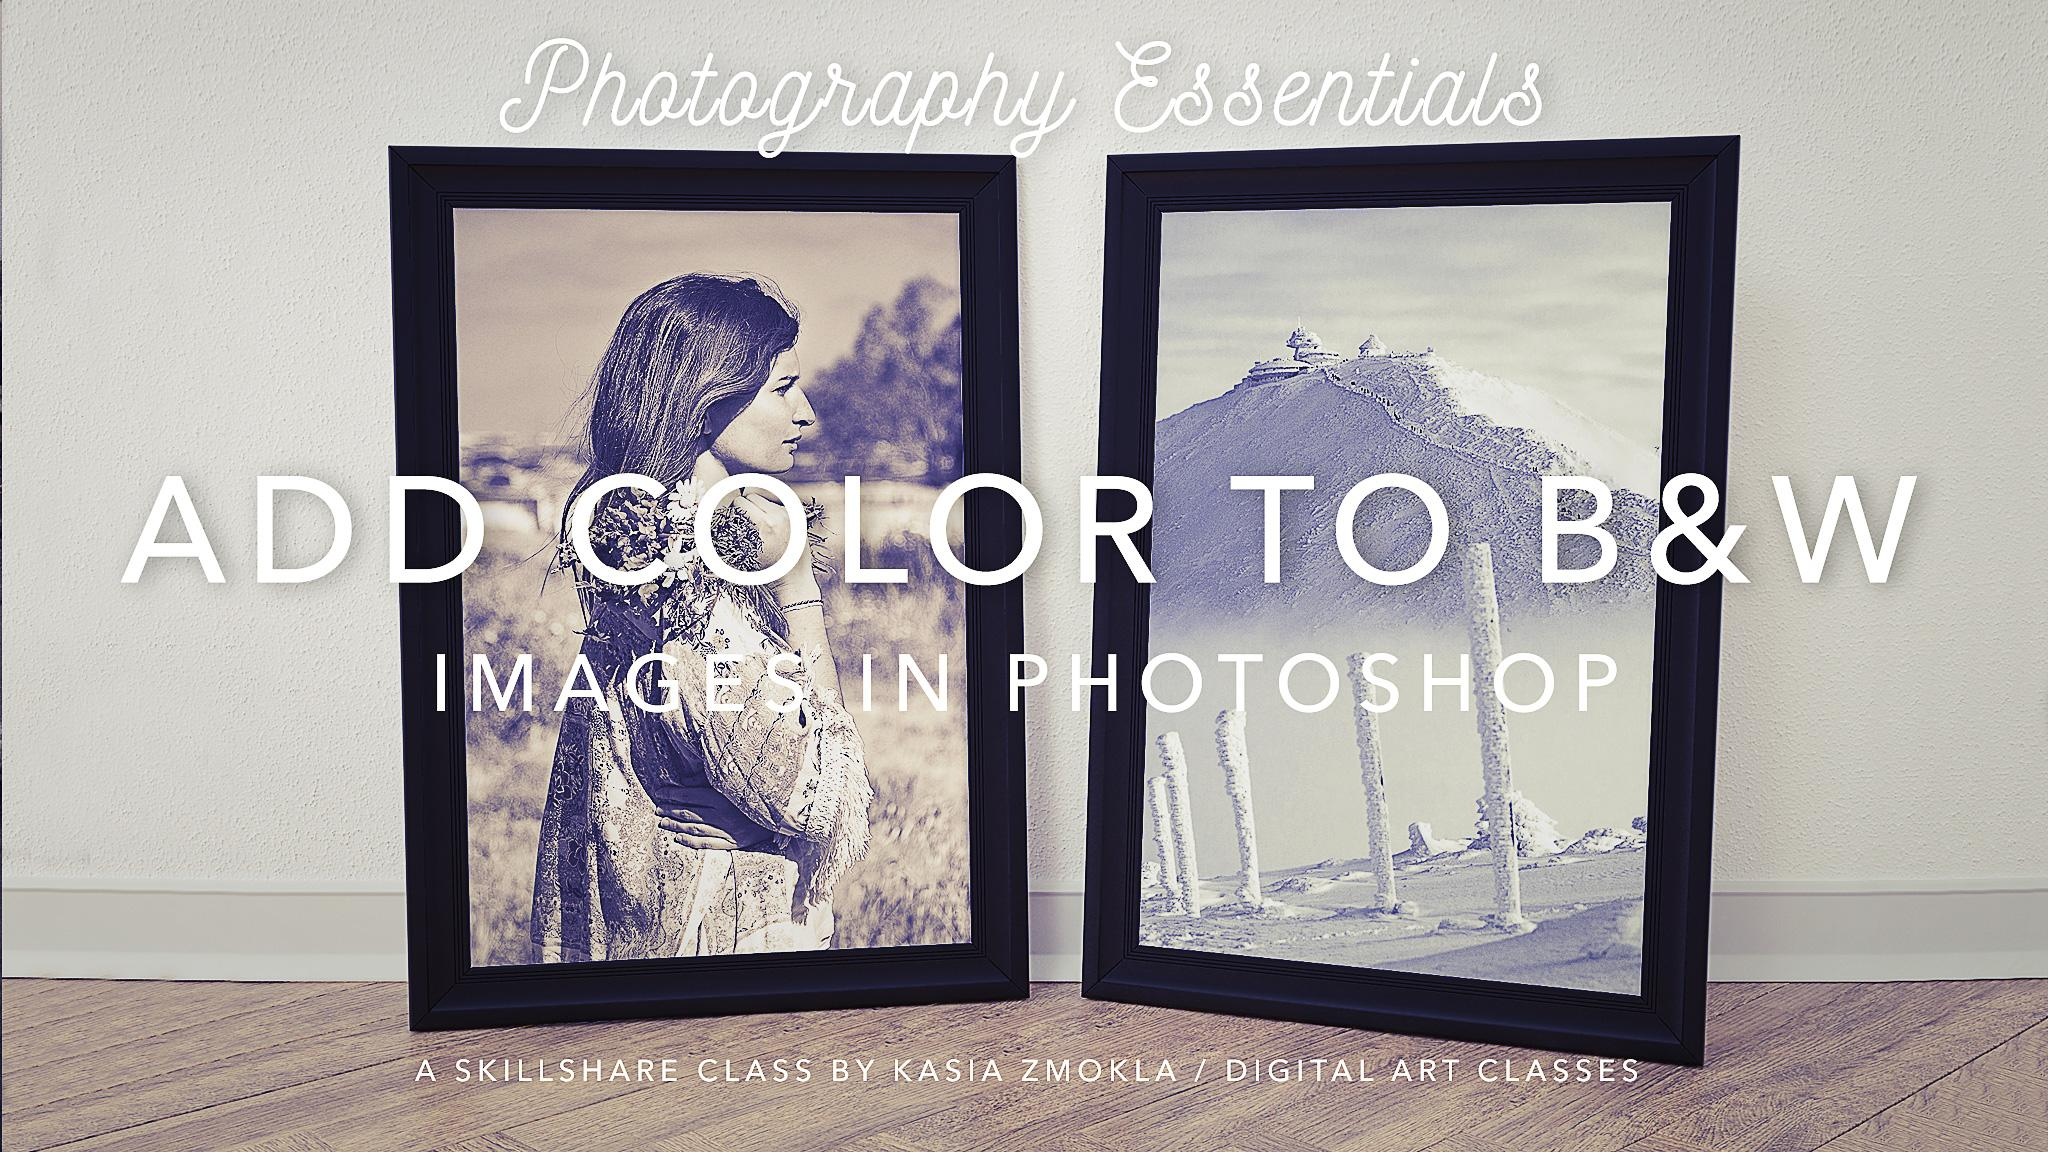 How to color your art in photoshop -  Add Color To Black White Images In Photoshop Add Emotional Value To Your Images With Toning Techniques In Photoshop Cc Speed Up Your Workflow With